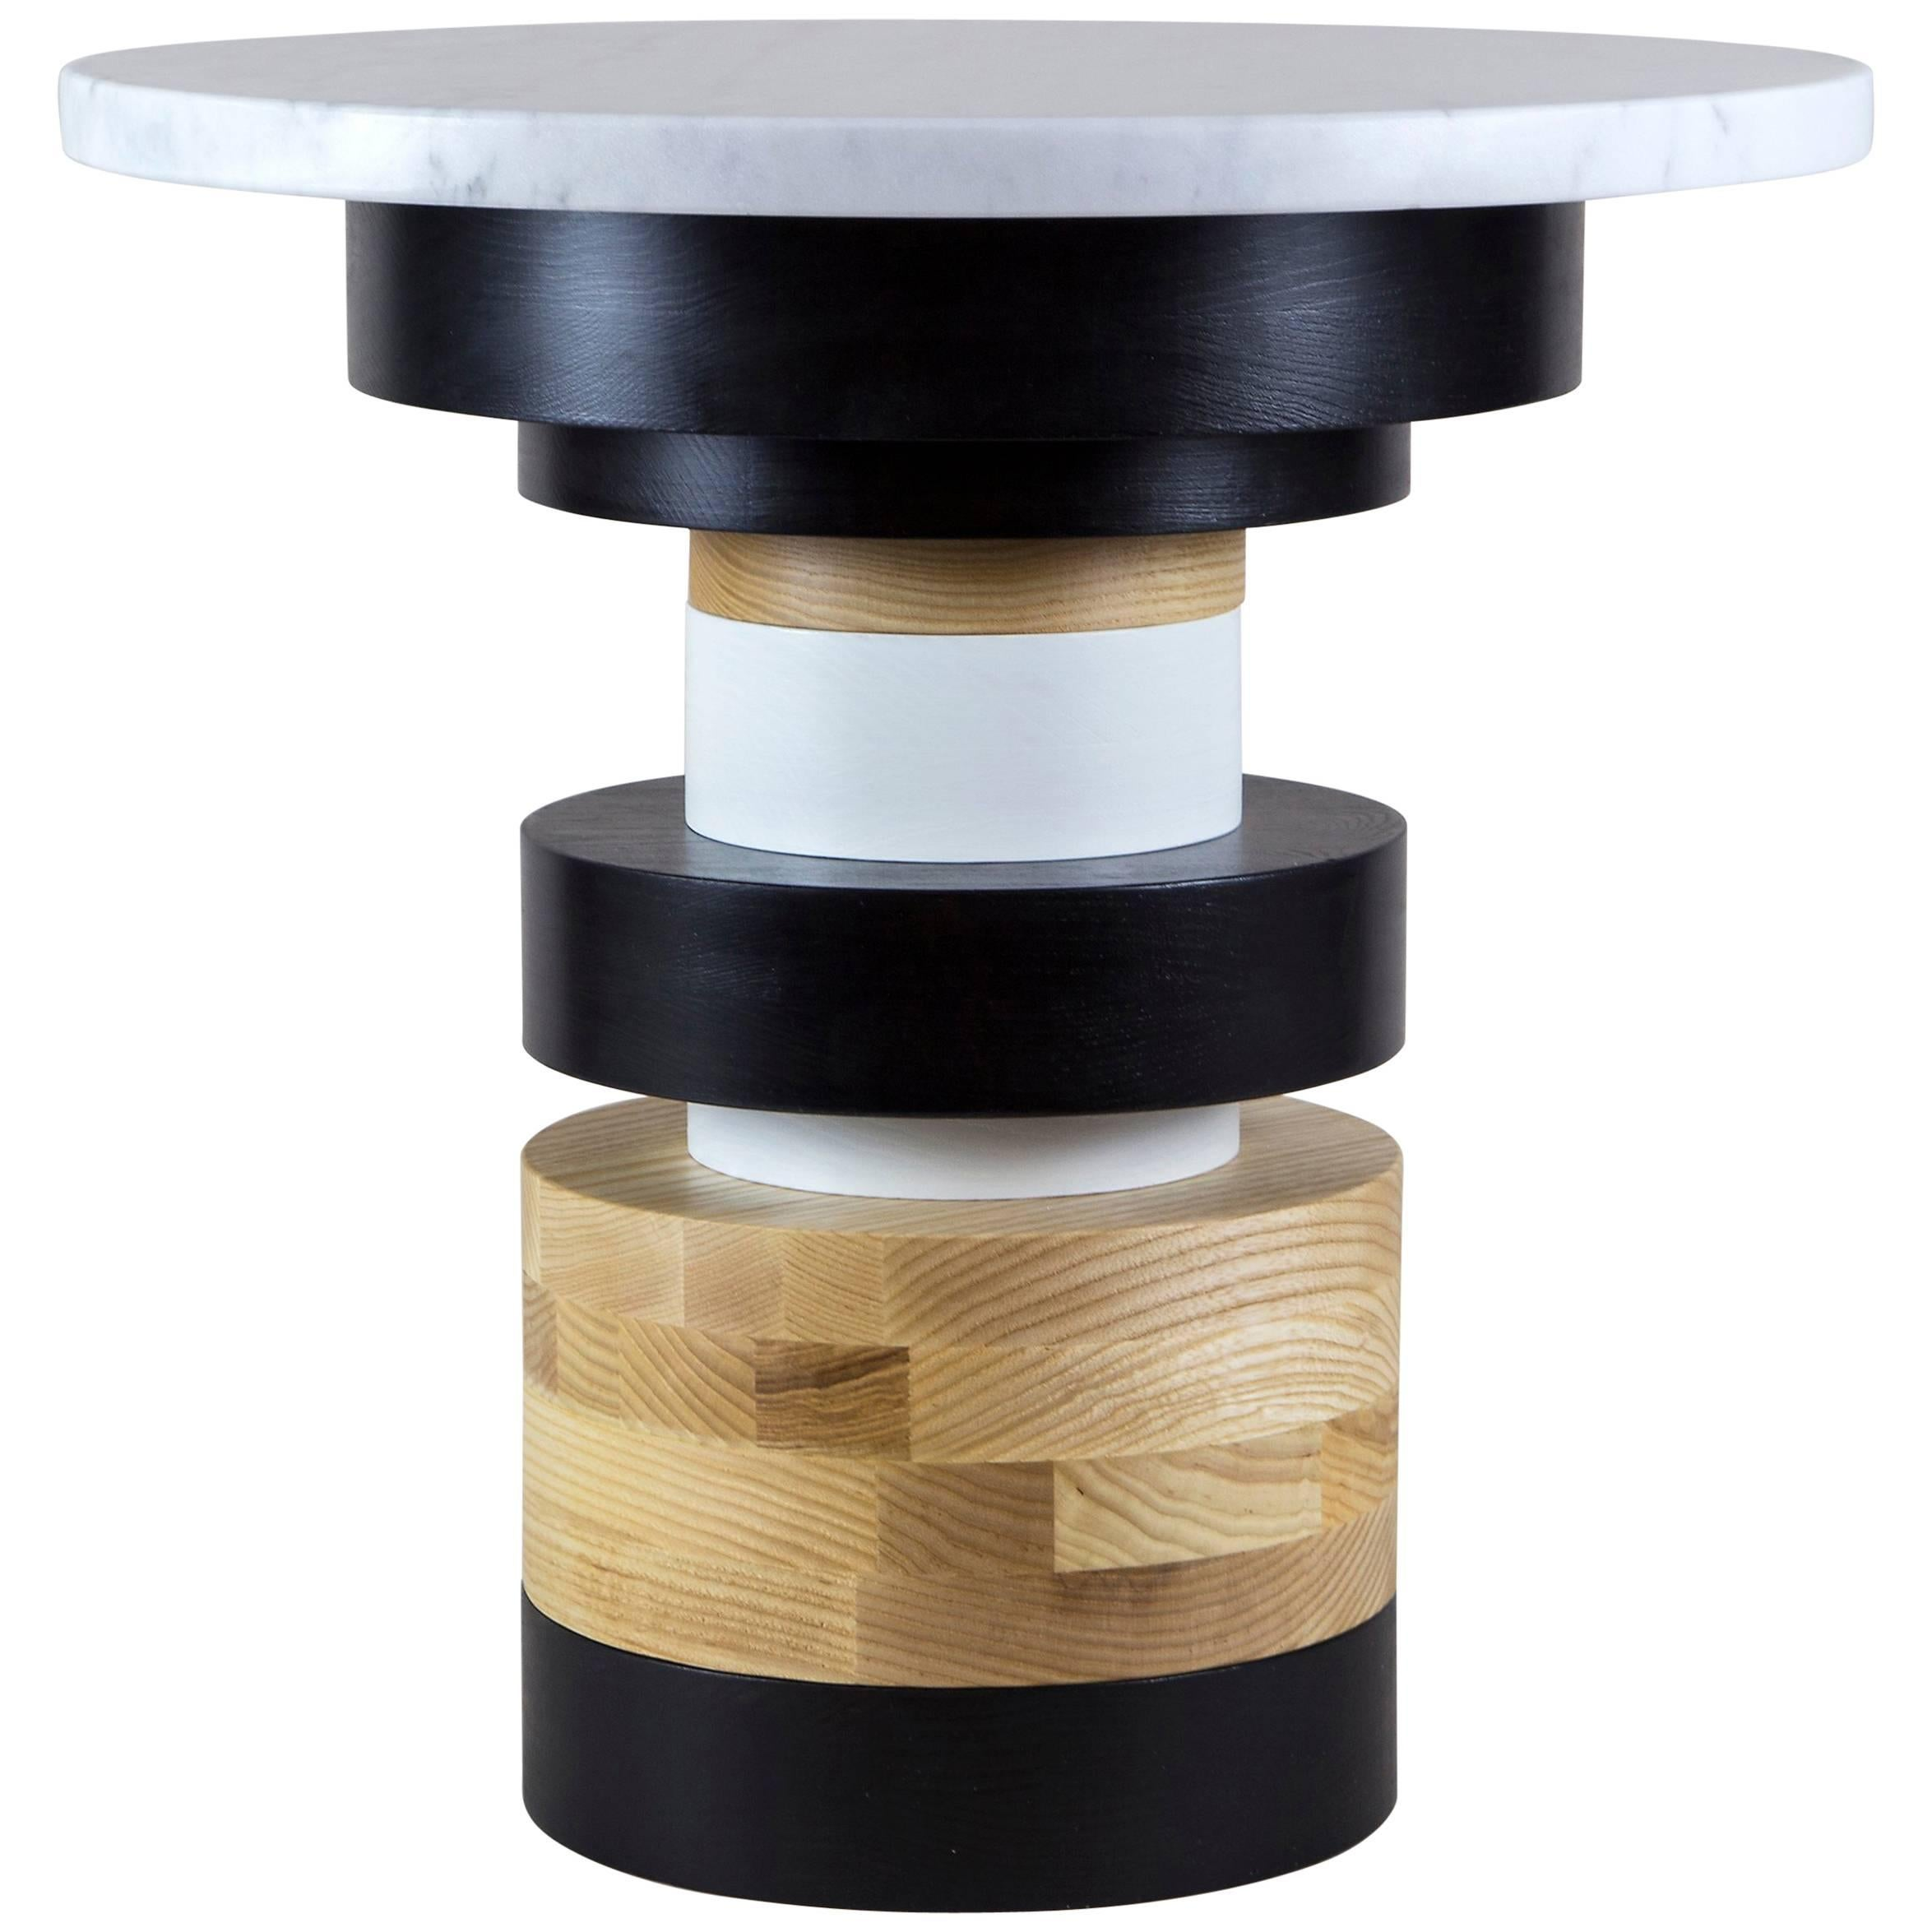 Customizable Short Sass Side Table from Souda, Large Marble Top, Made to Order